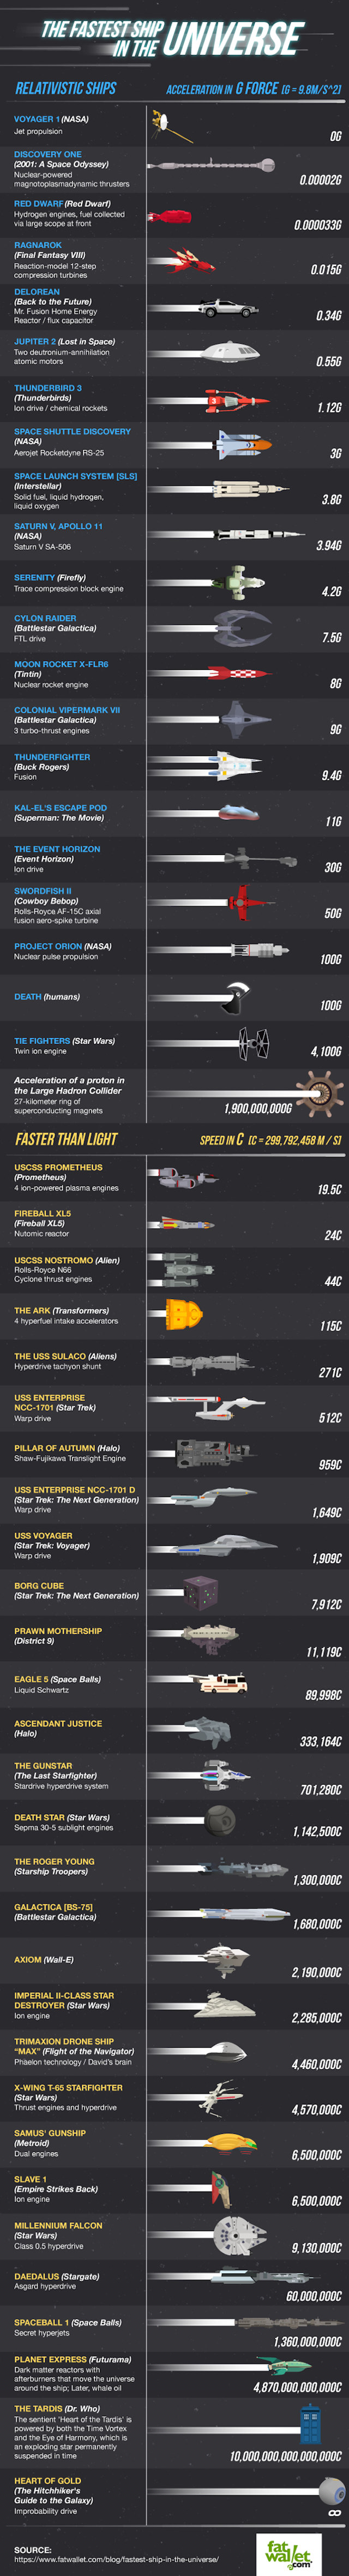 fastest-spaceships-infographic-full